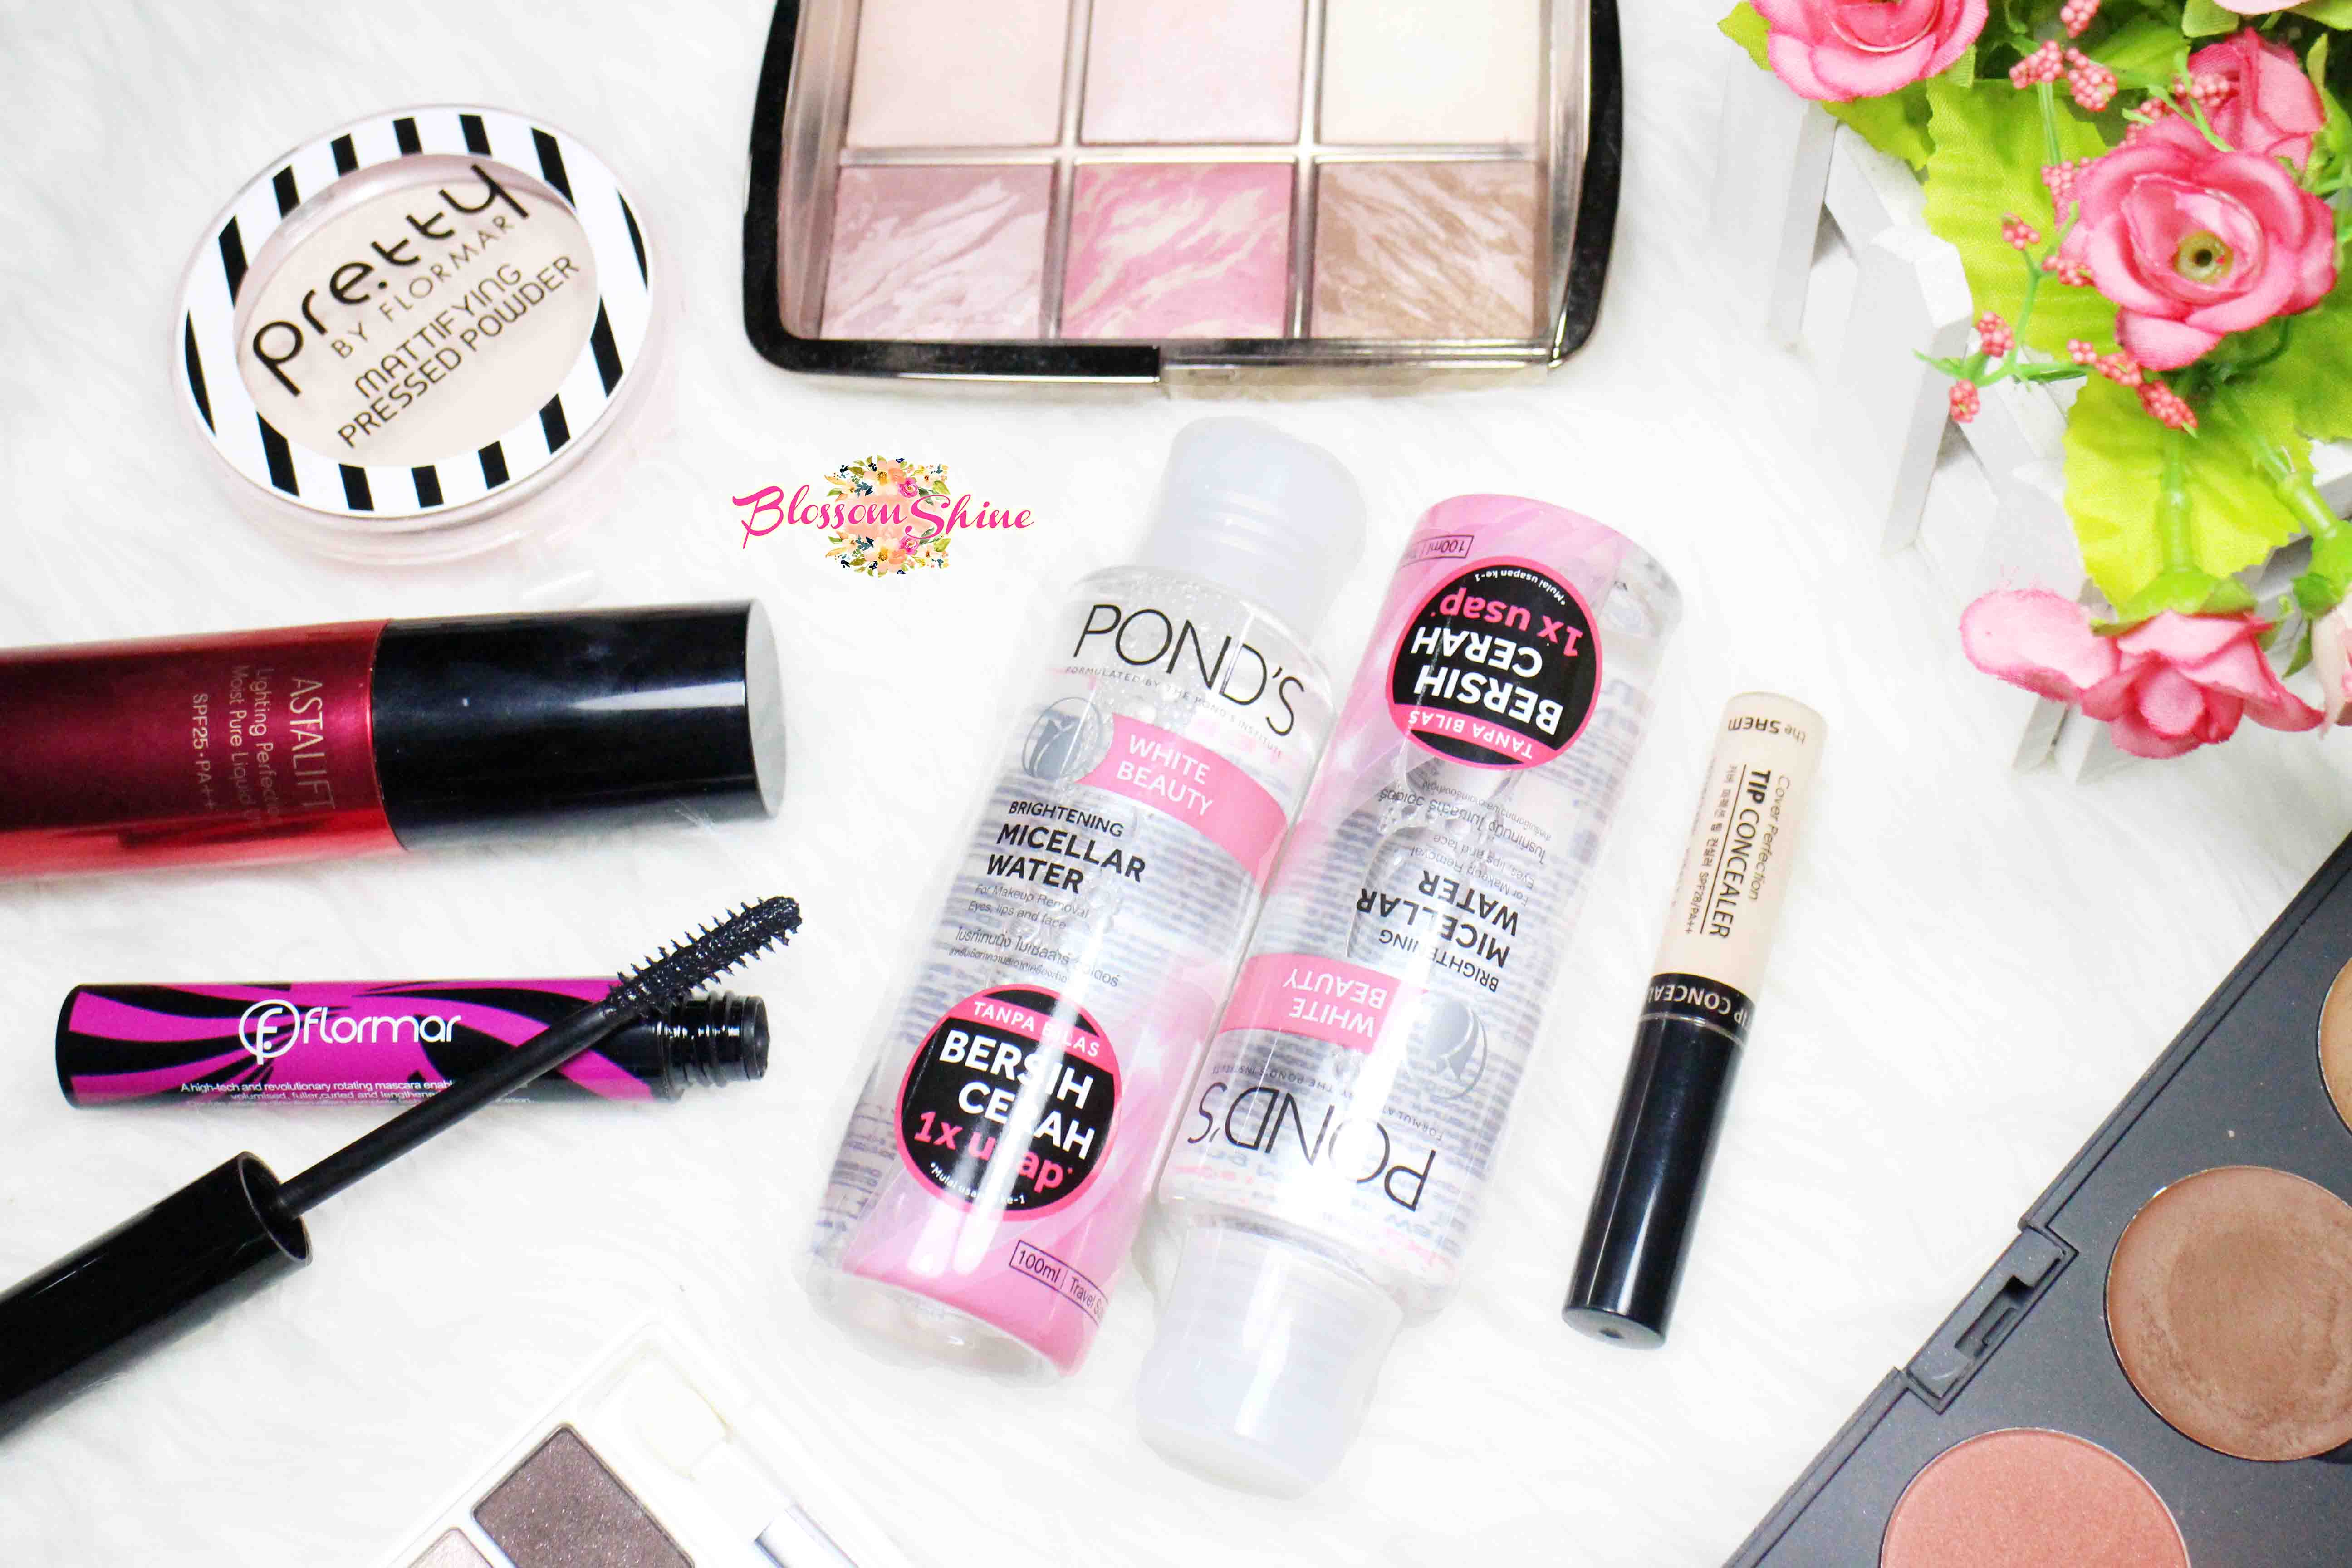 POND'S Brightening Micellar Water Review